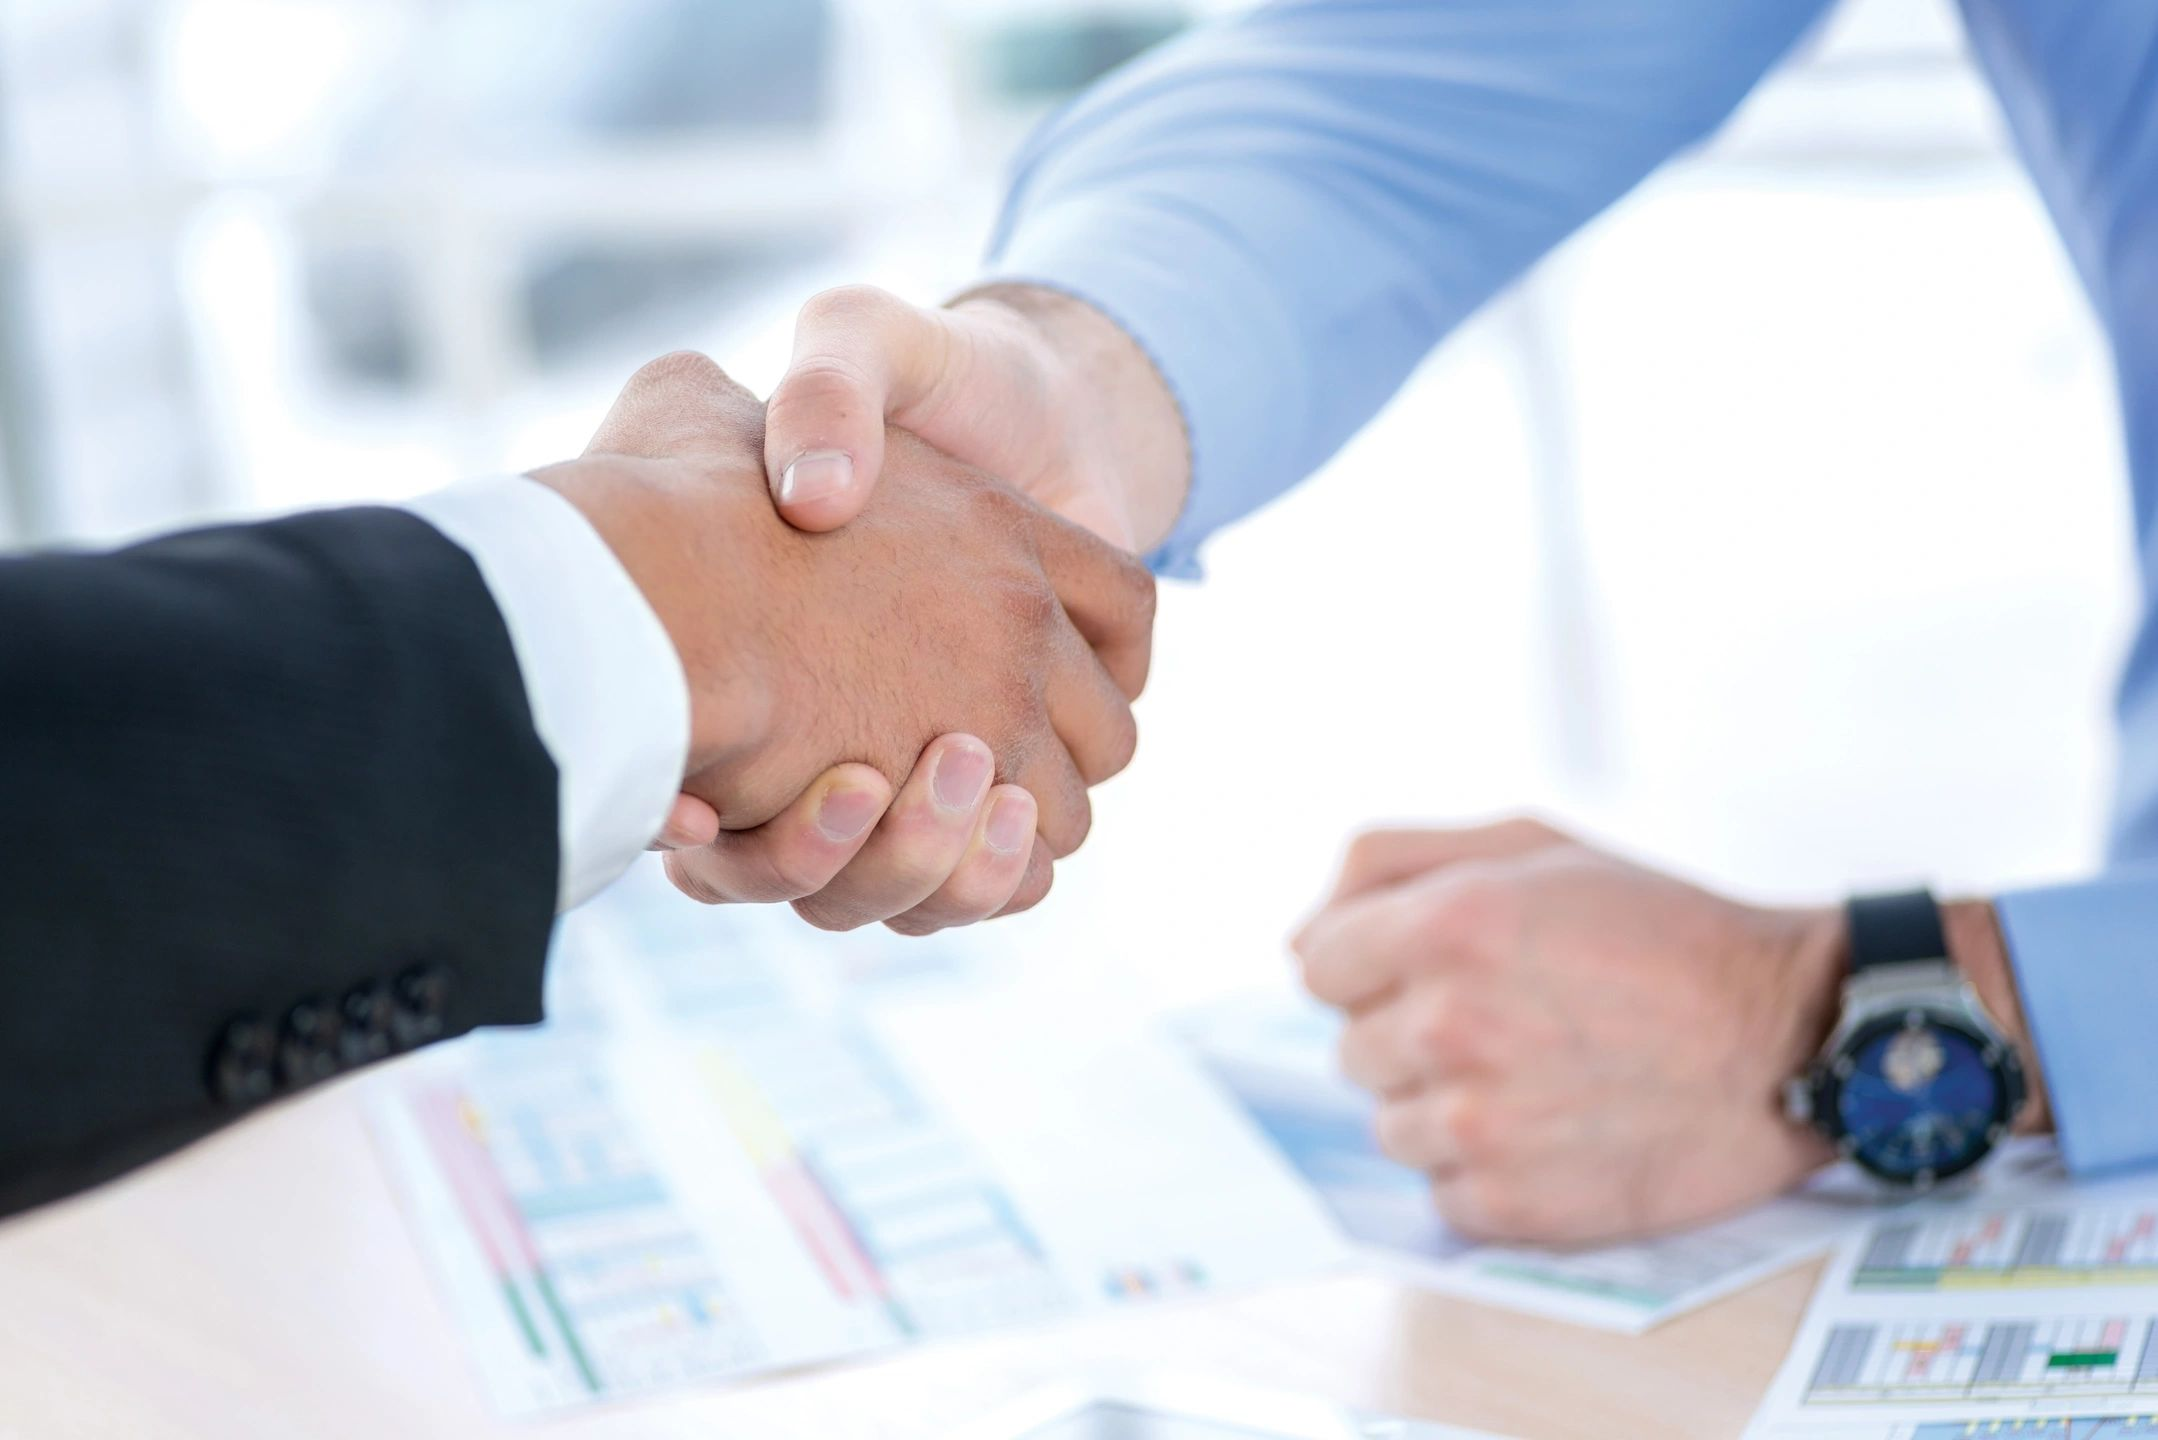 Hands shaking over business documents